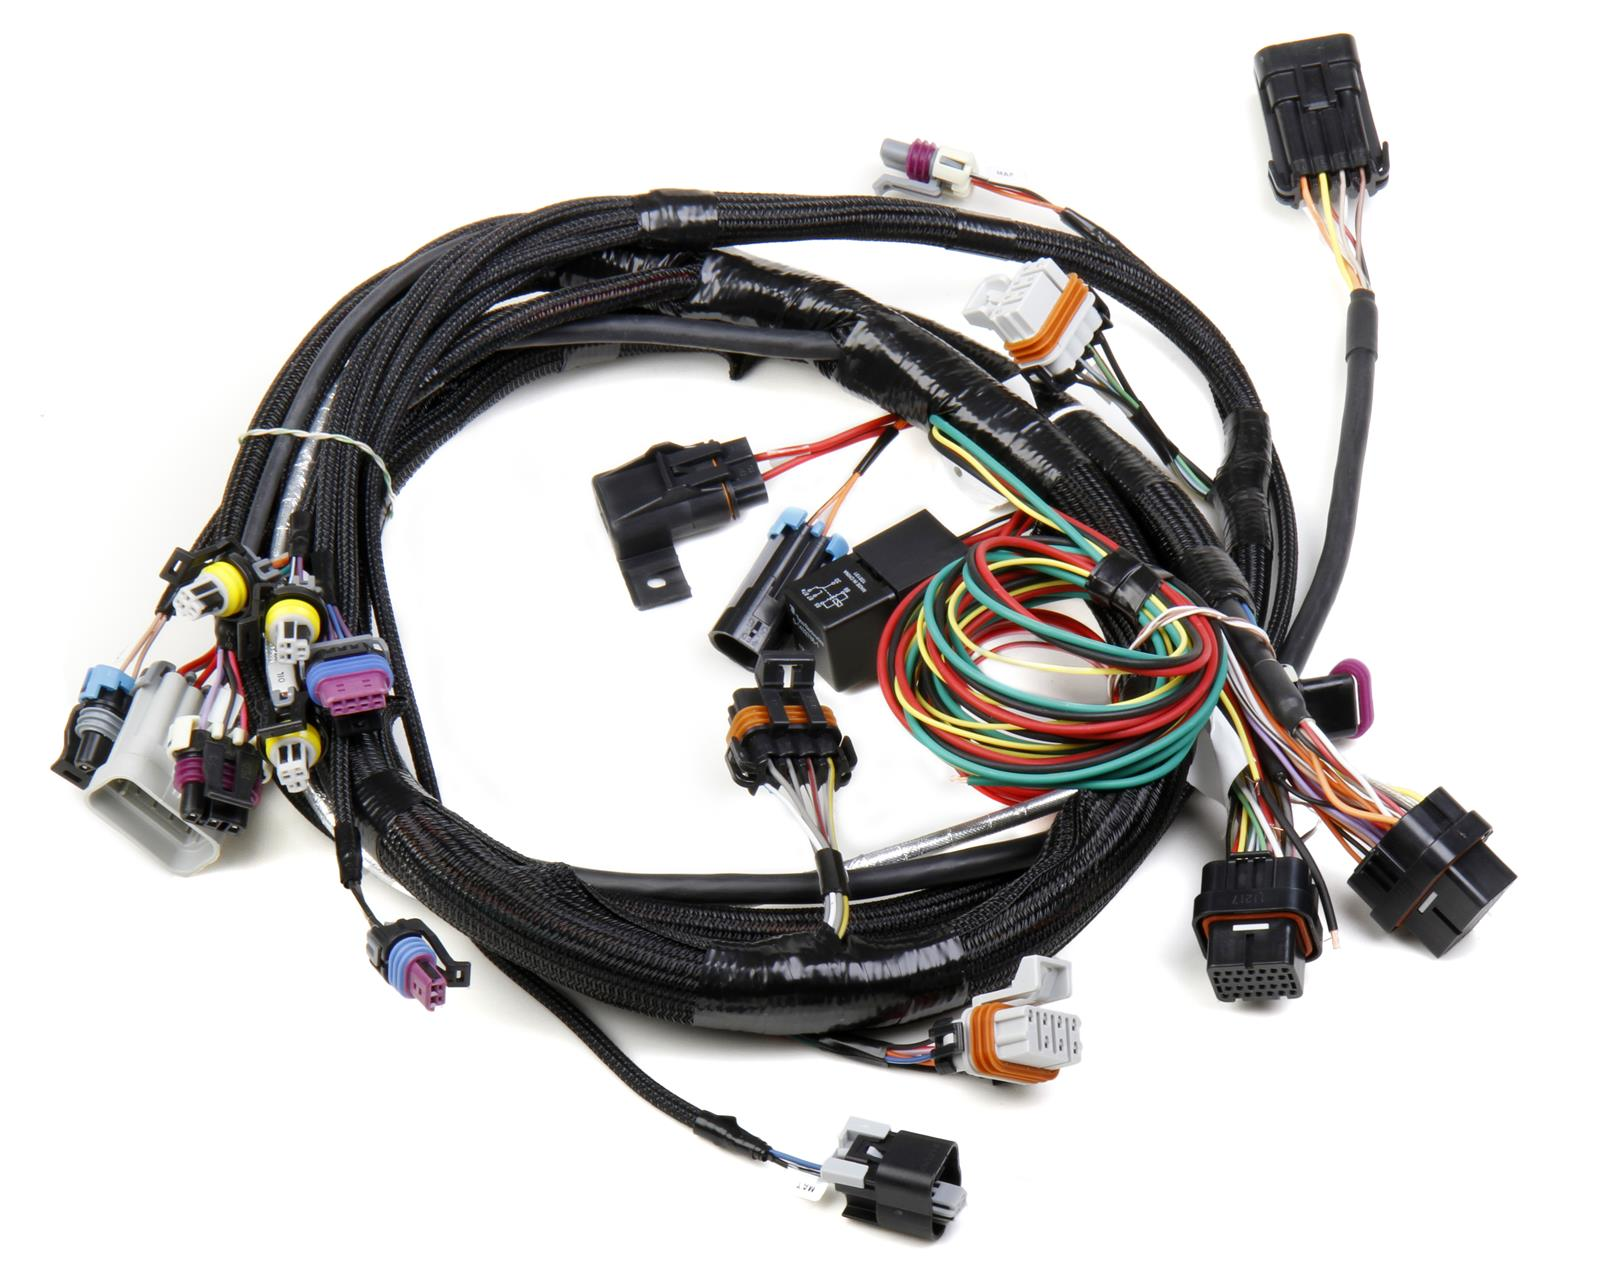 hight resolution of holley efi systems wiring harnesses 558 102 free shipping on orders over 99 at summit racing